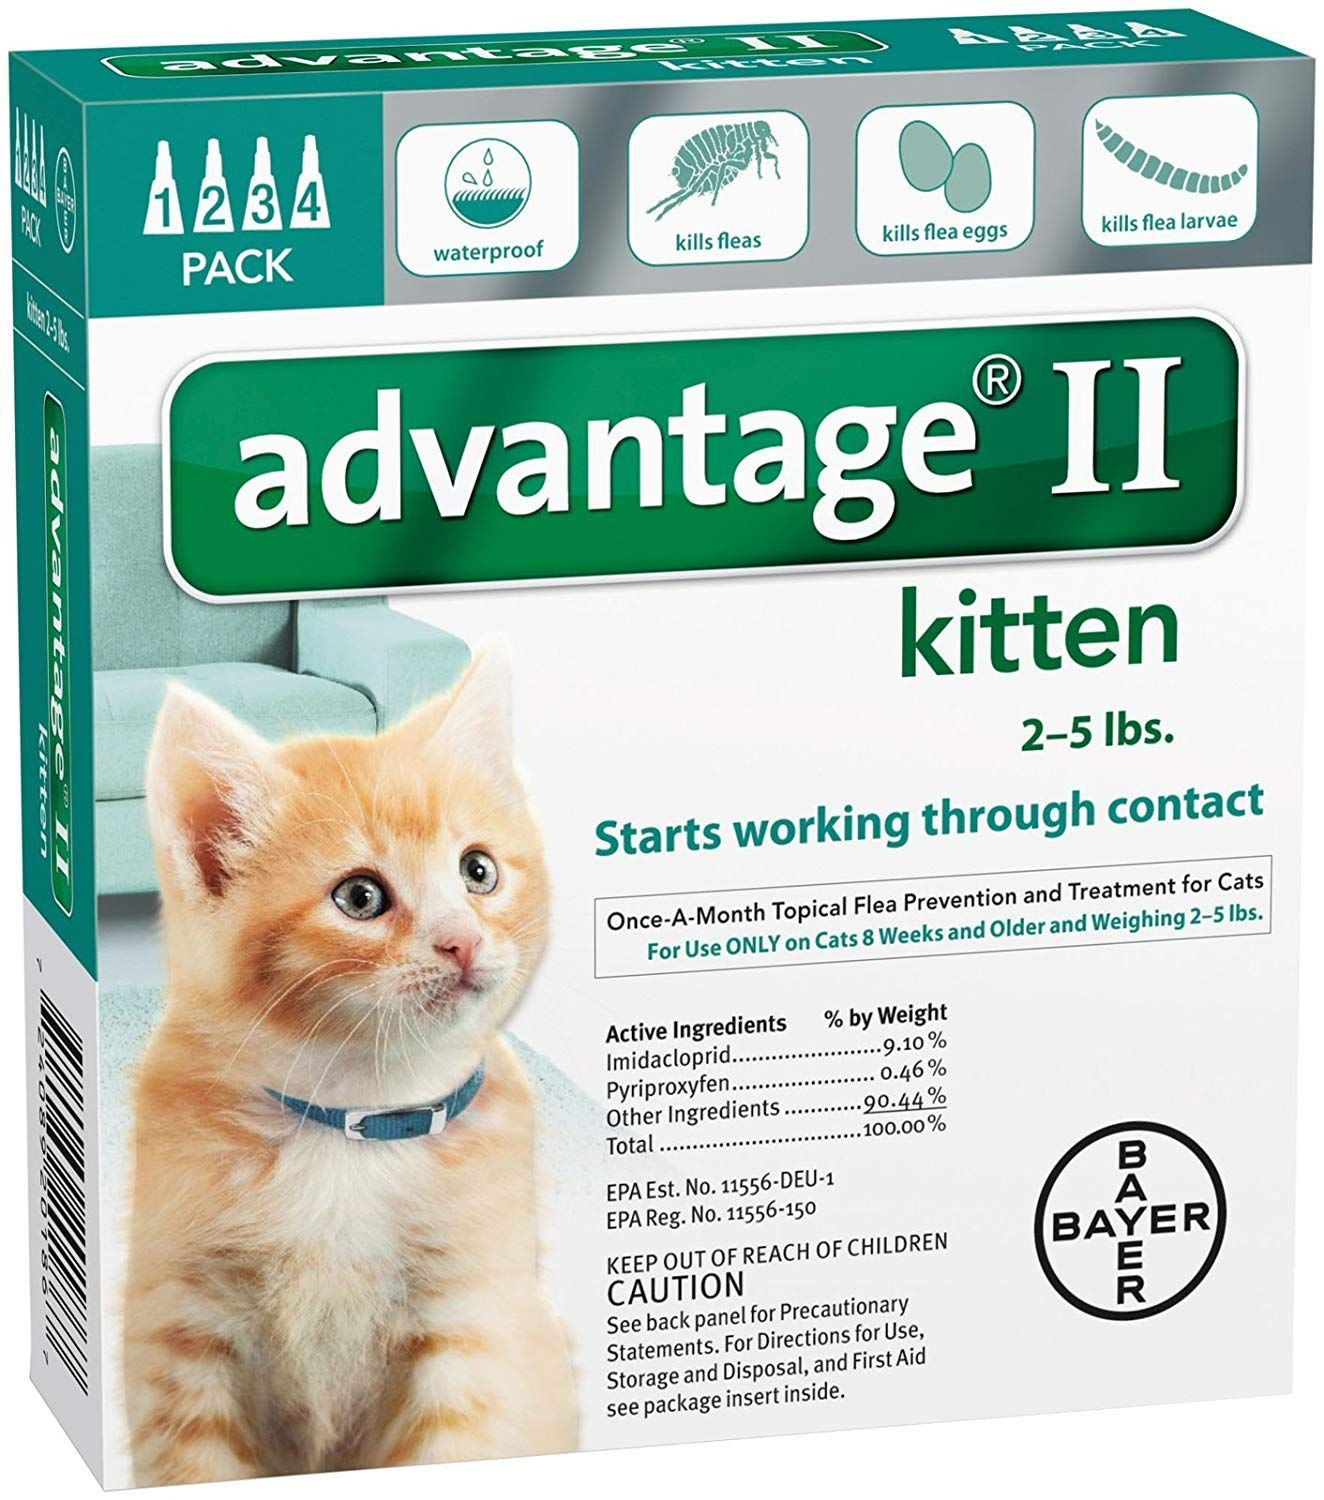 Advantage Ii Kitten 4 Pack Very Nice Of Your Presence To Drop By To Visit The Photo This Is Our Affiliate Link Catfleaandt Cat Fleas Flea And Tick Fleas